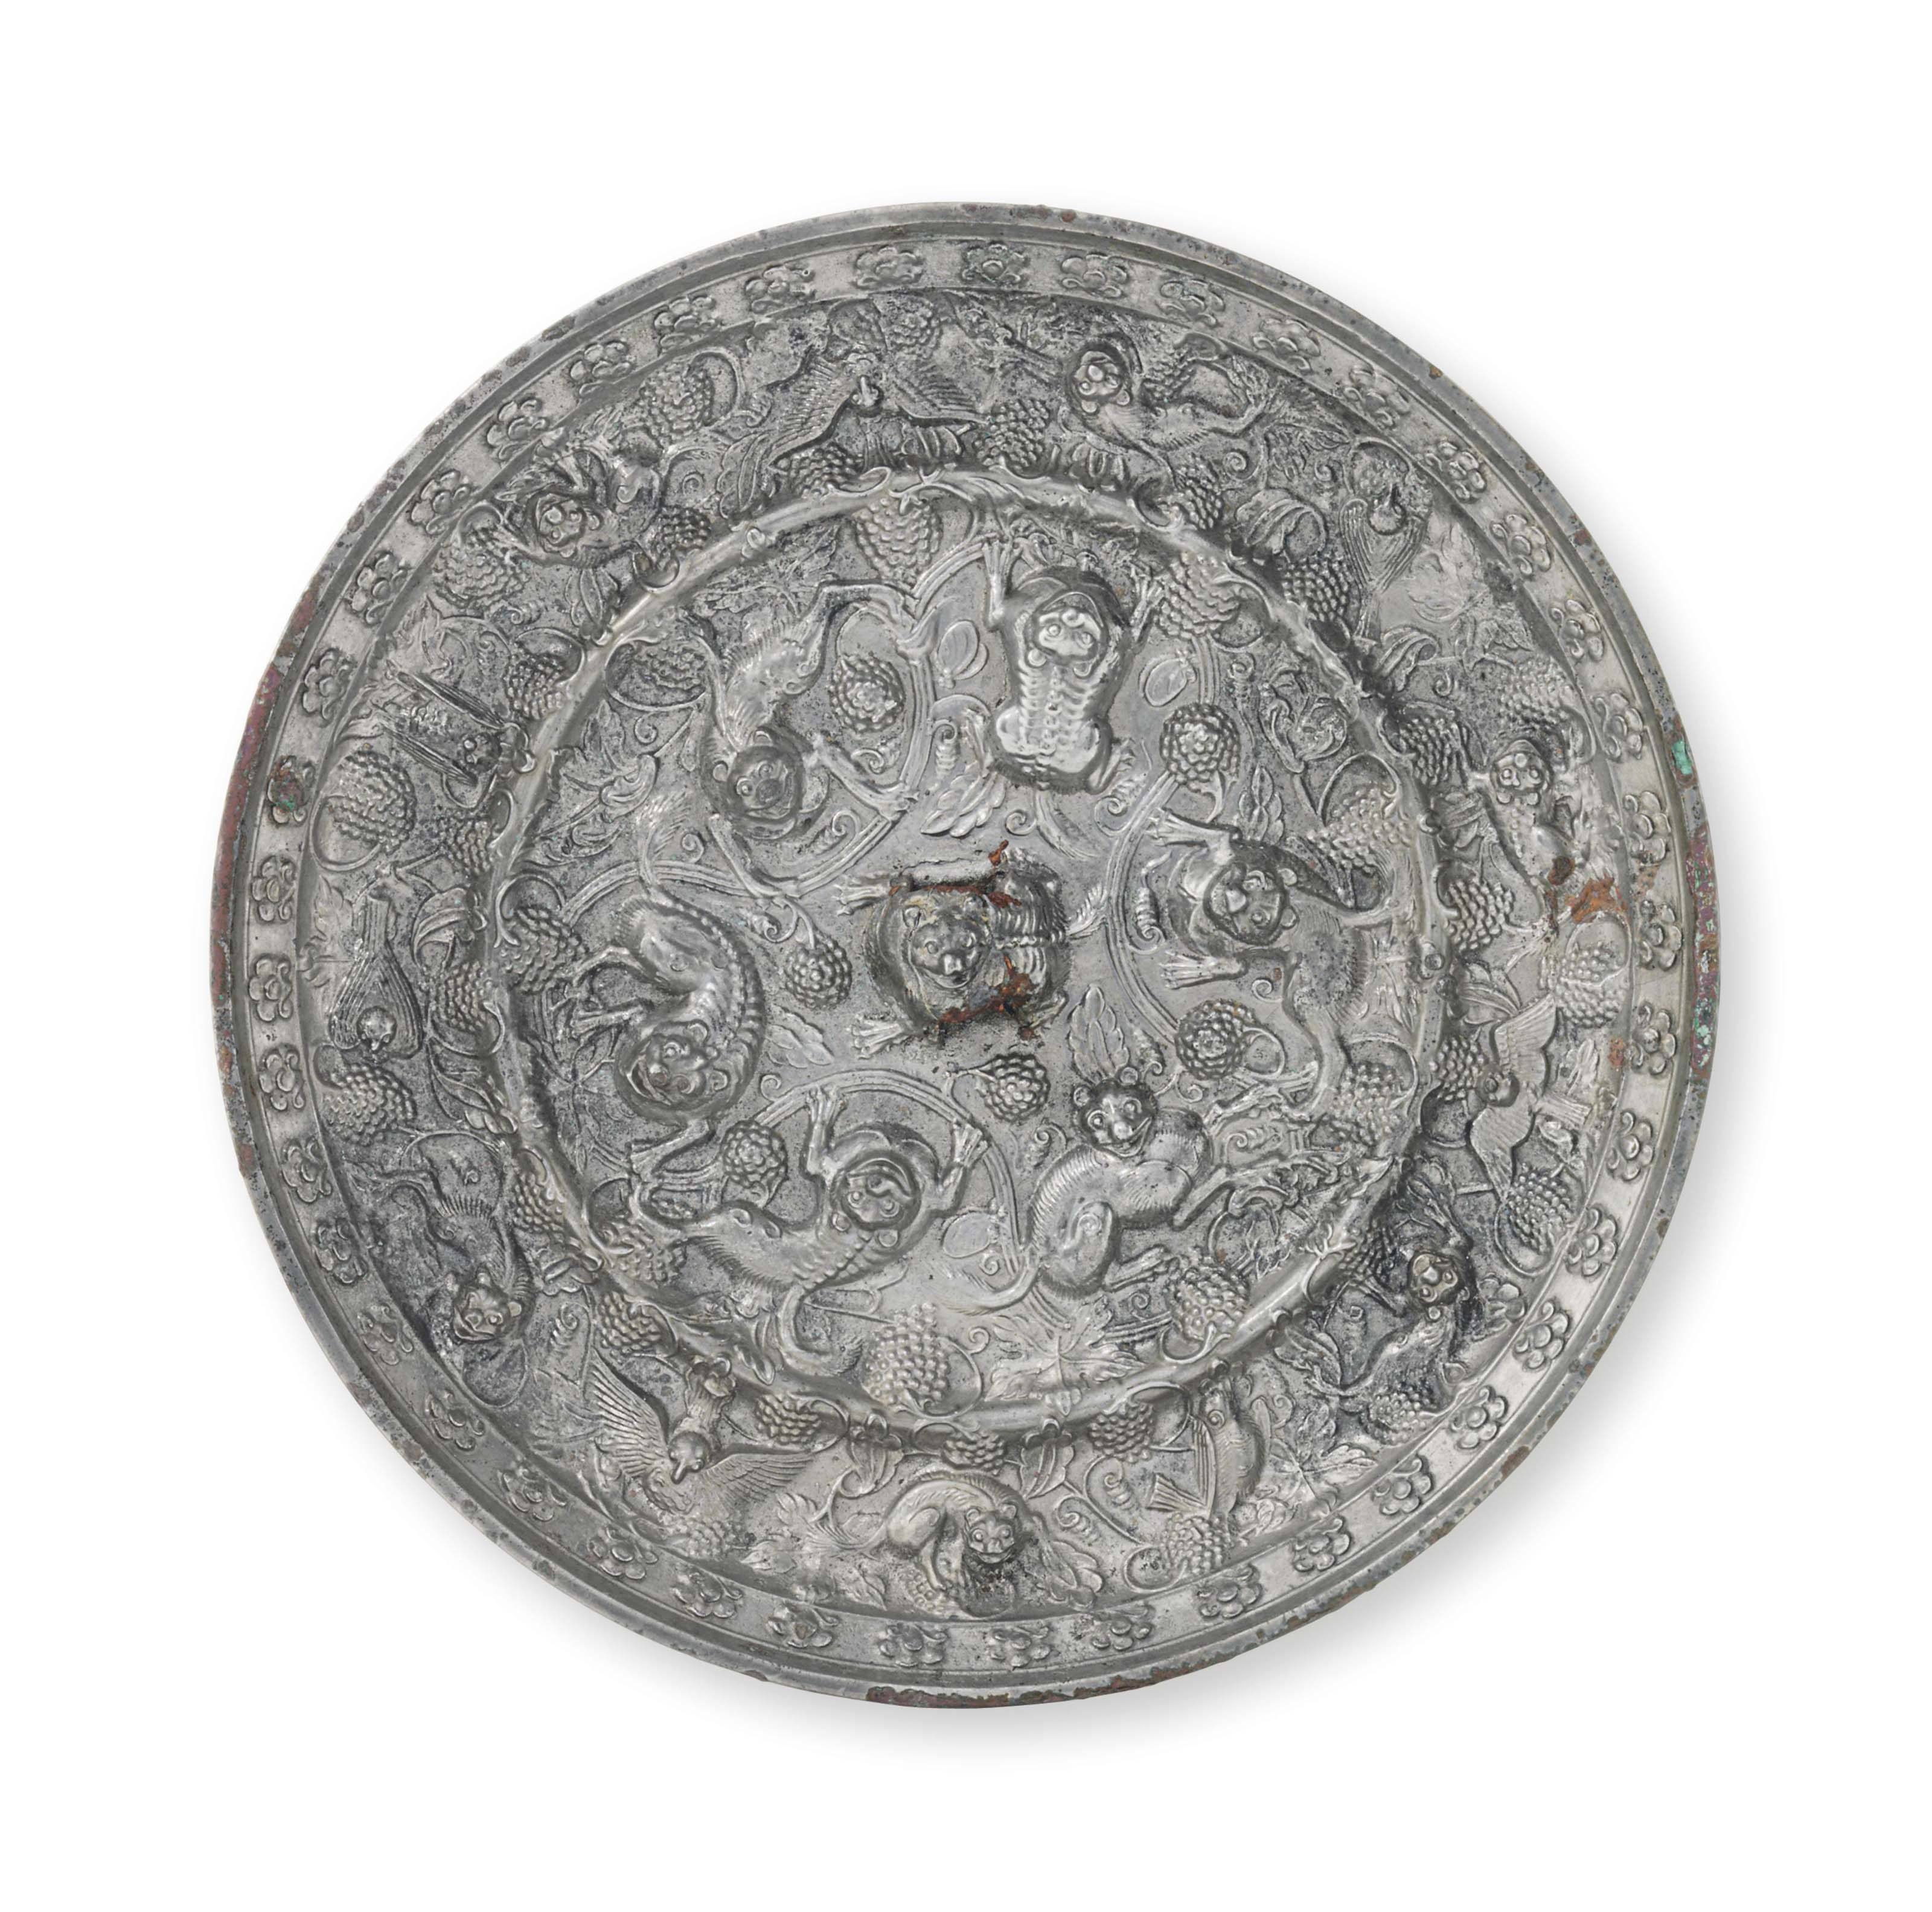 Image result for A large silvery bronze 'Lion and grapevine' circular mirror, China, Tang dynasty (AD 618-907)